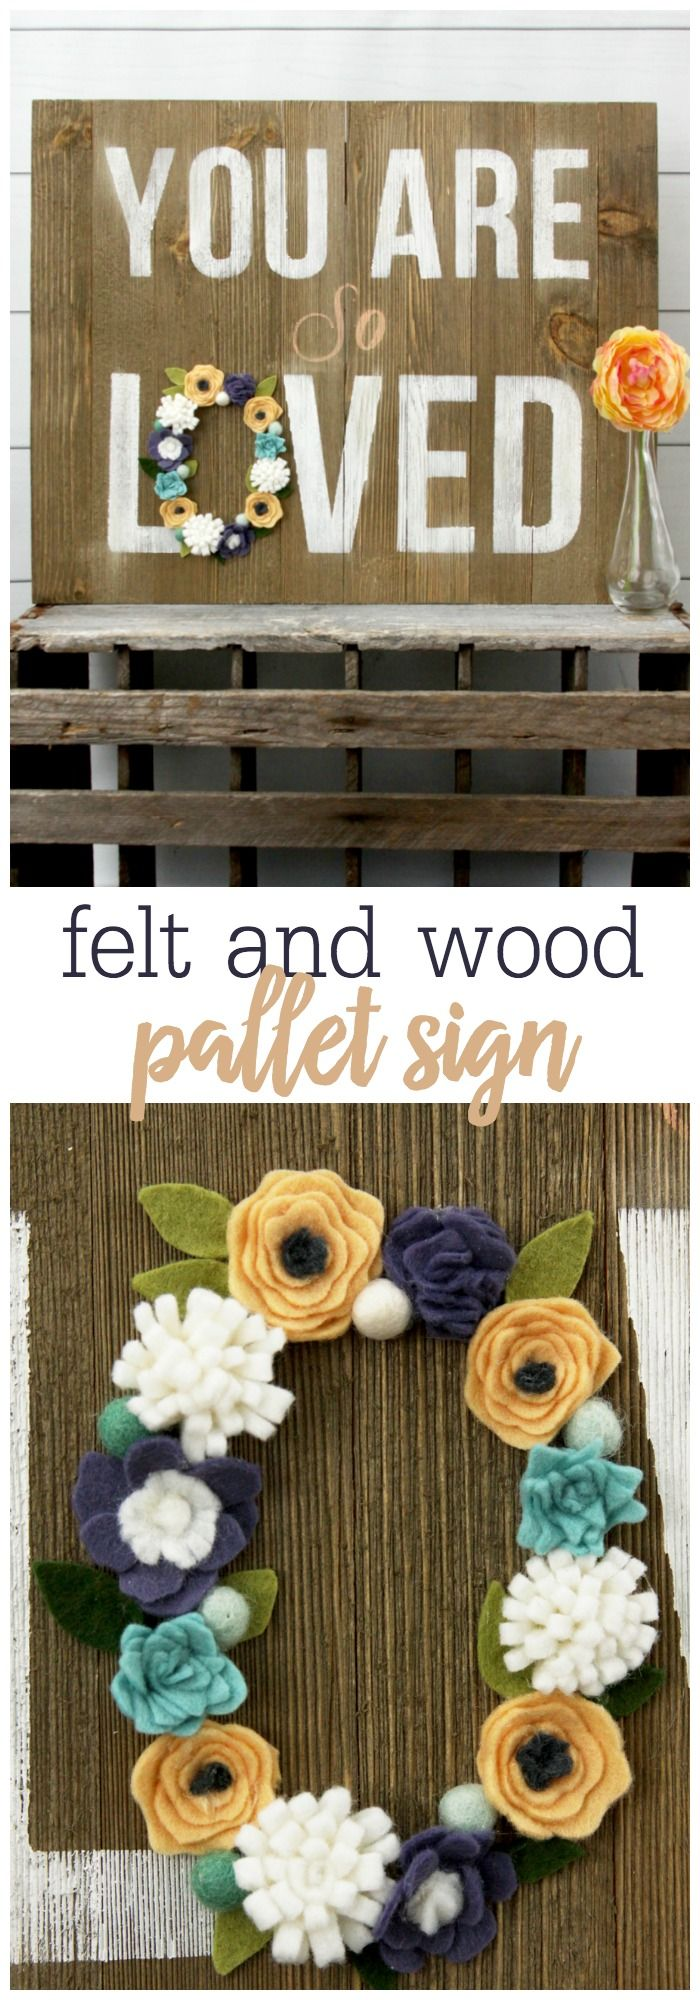 You Are So Loved Wood Pallet Sign - a premade wood pallet with a simple stencil, all dressed up with little felt flowers!